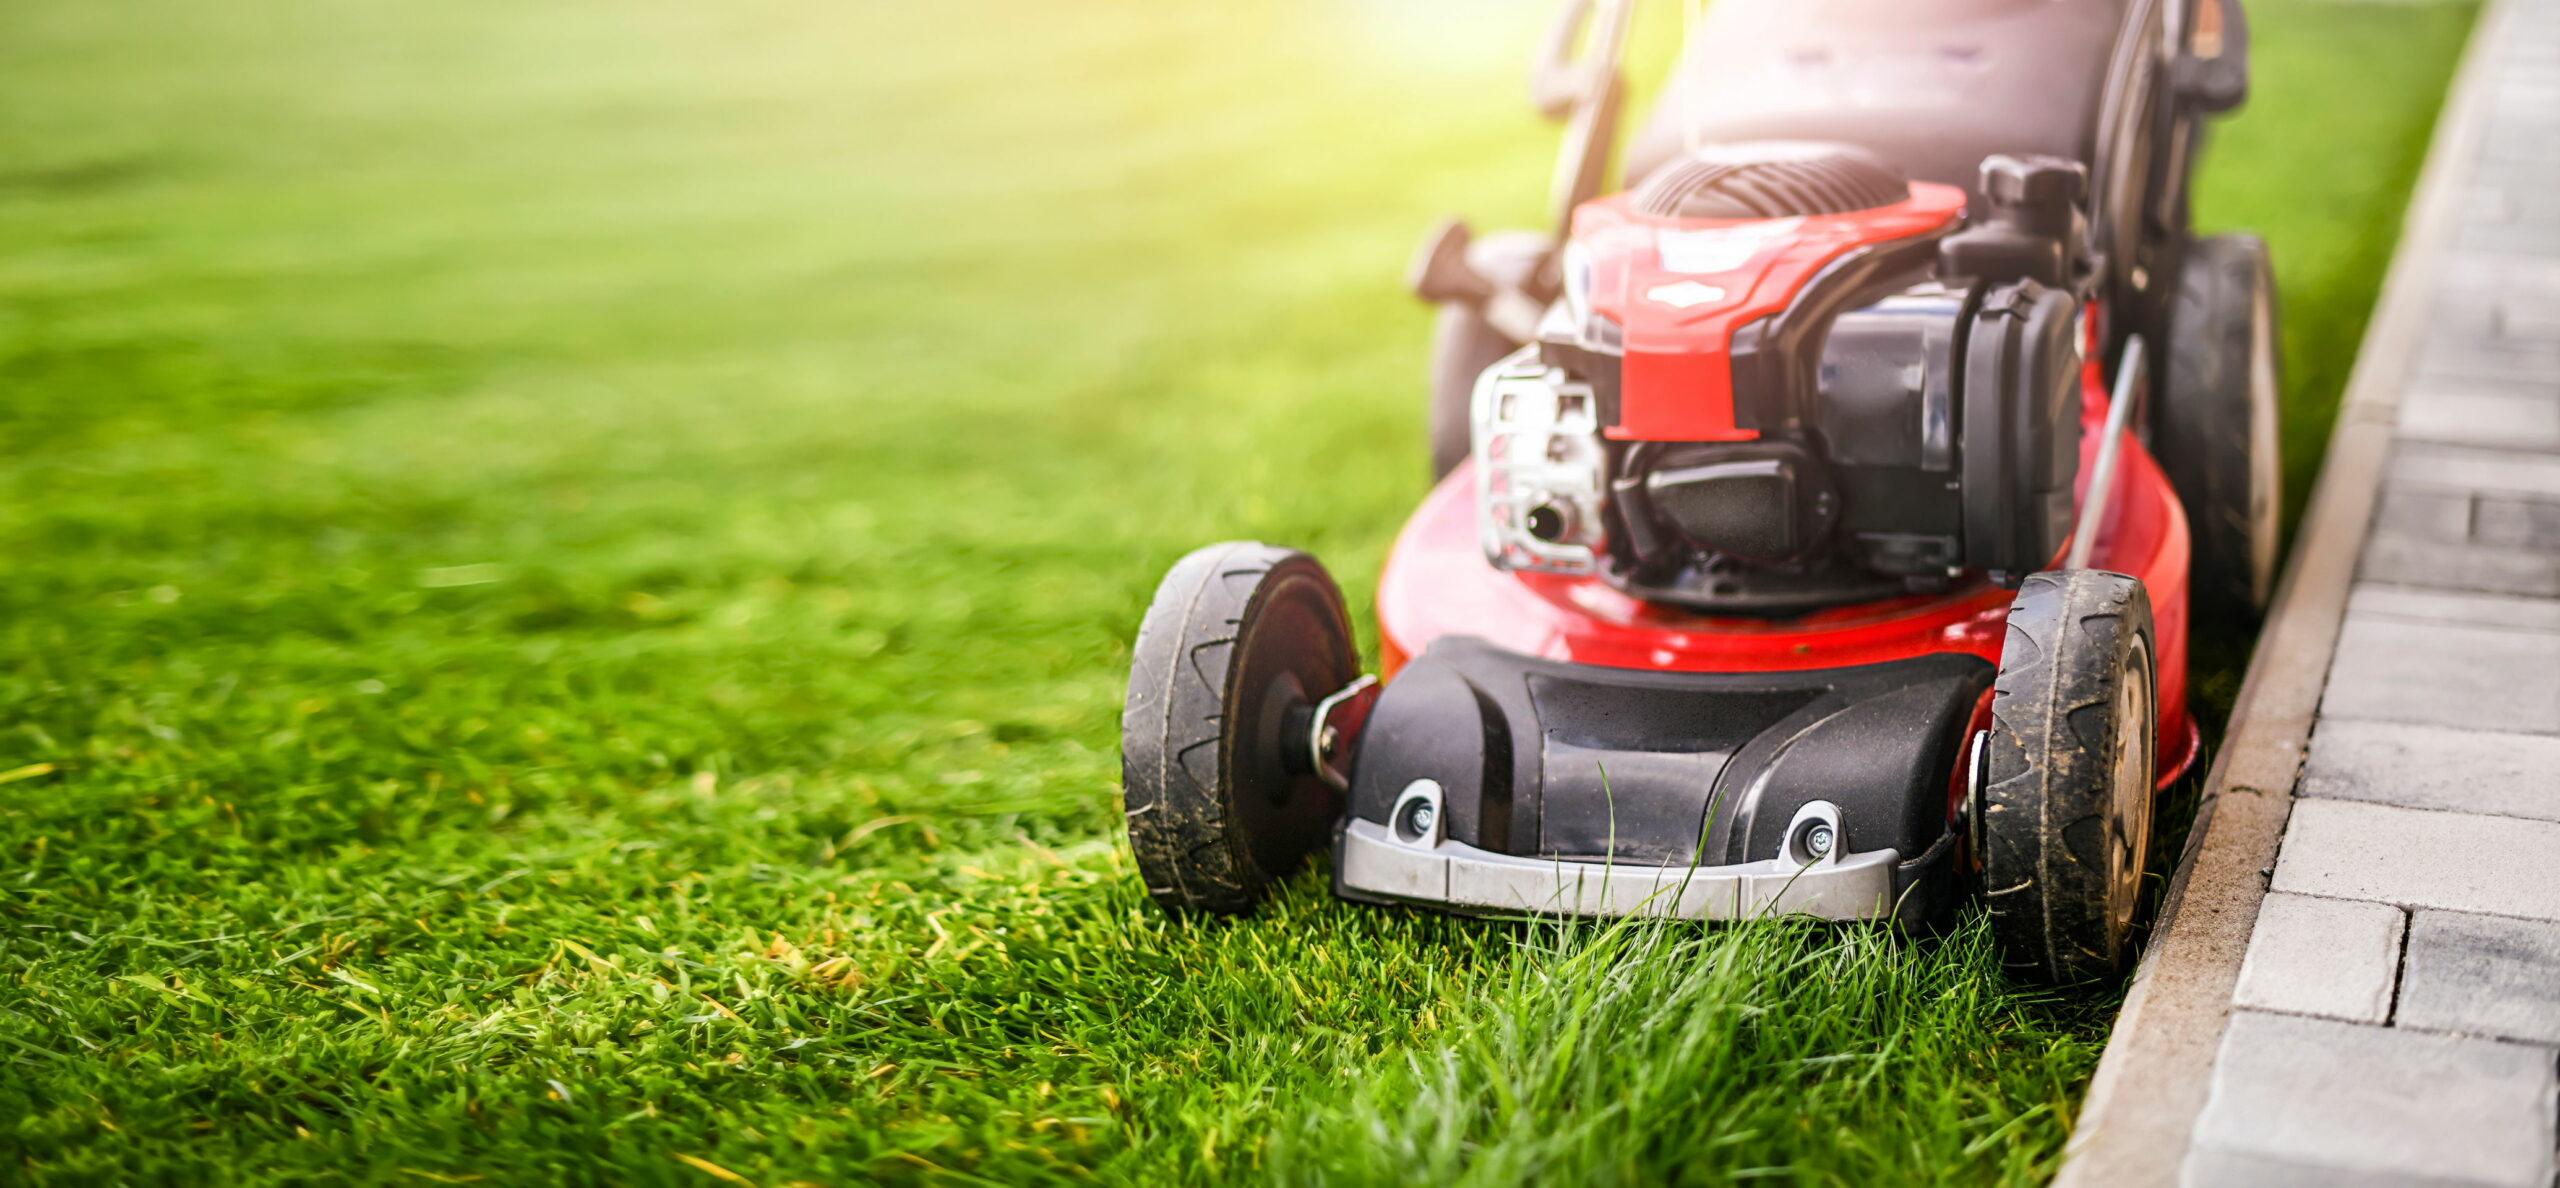 How Often Should I Mow the Lawn? 1